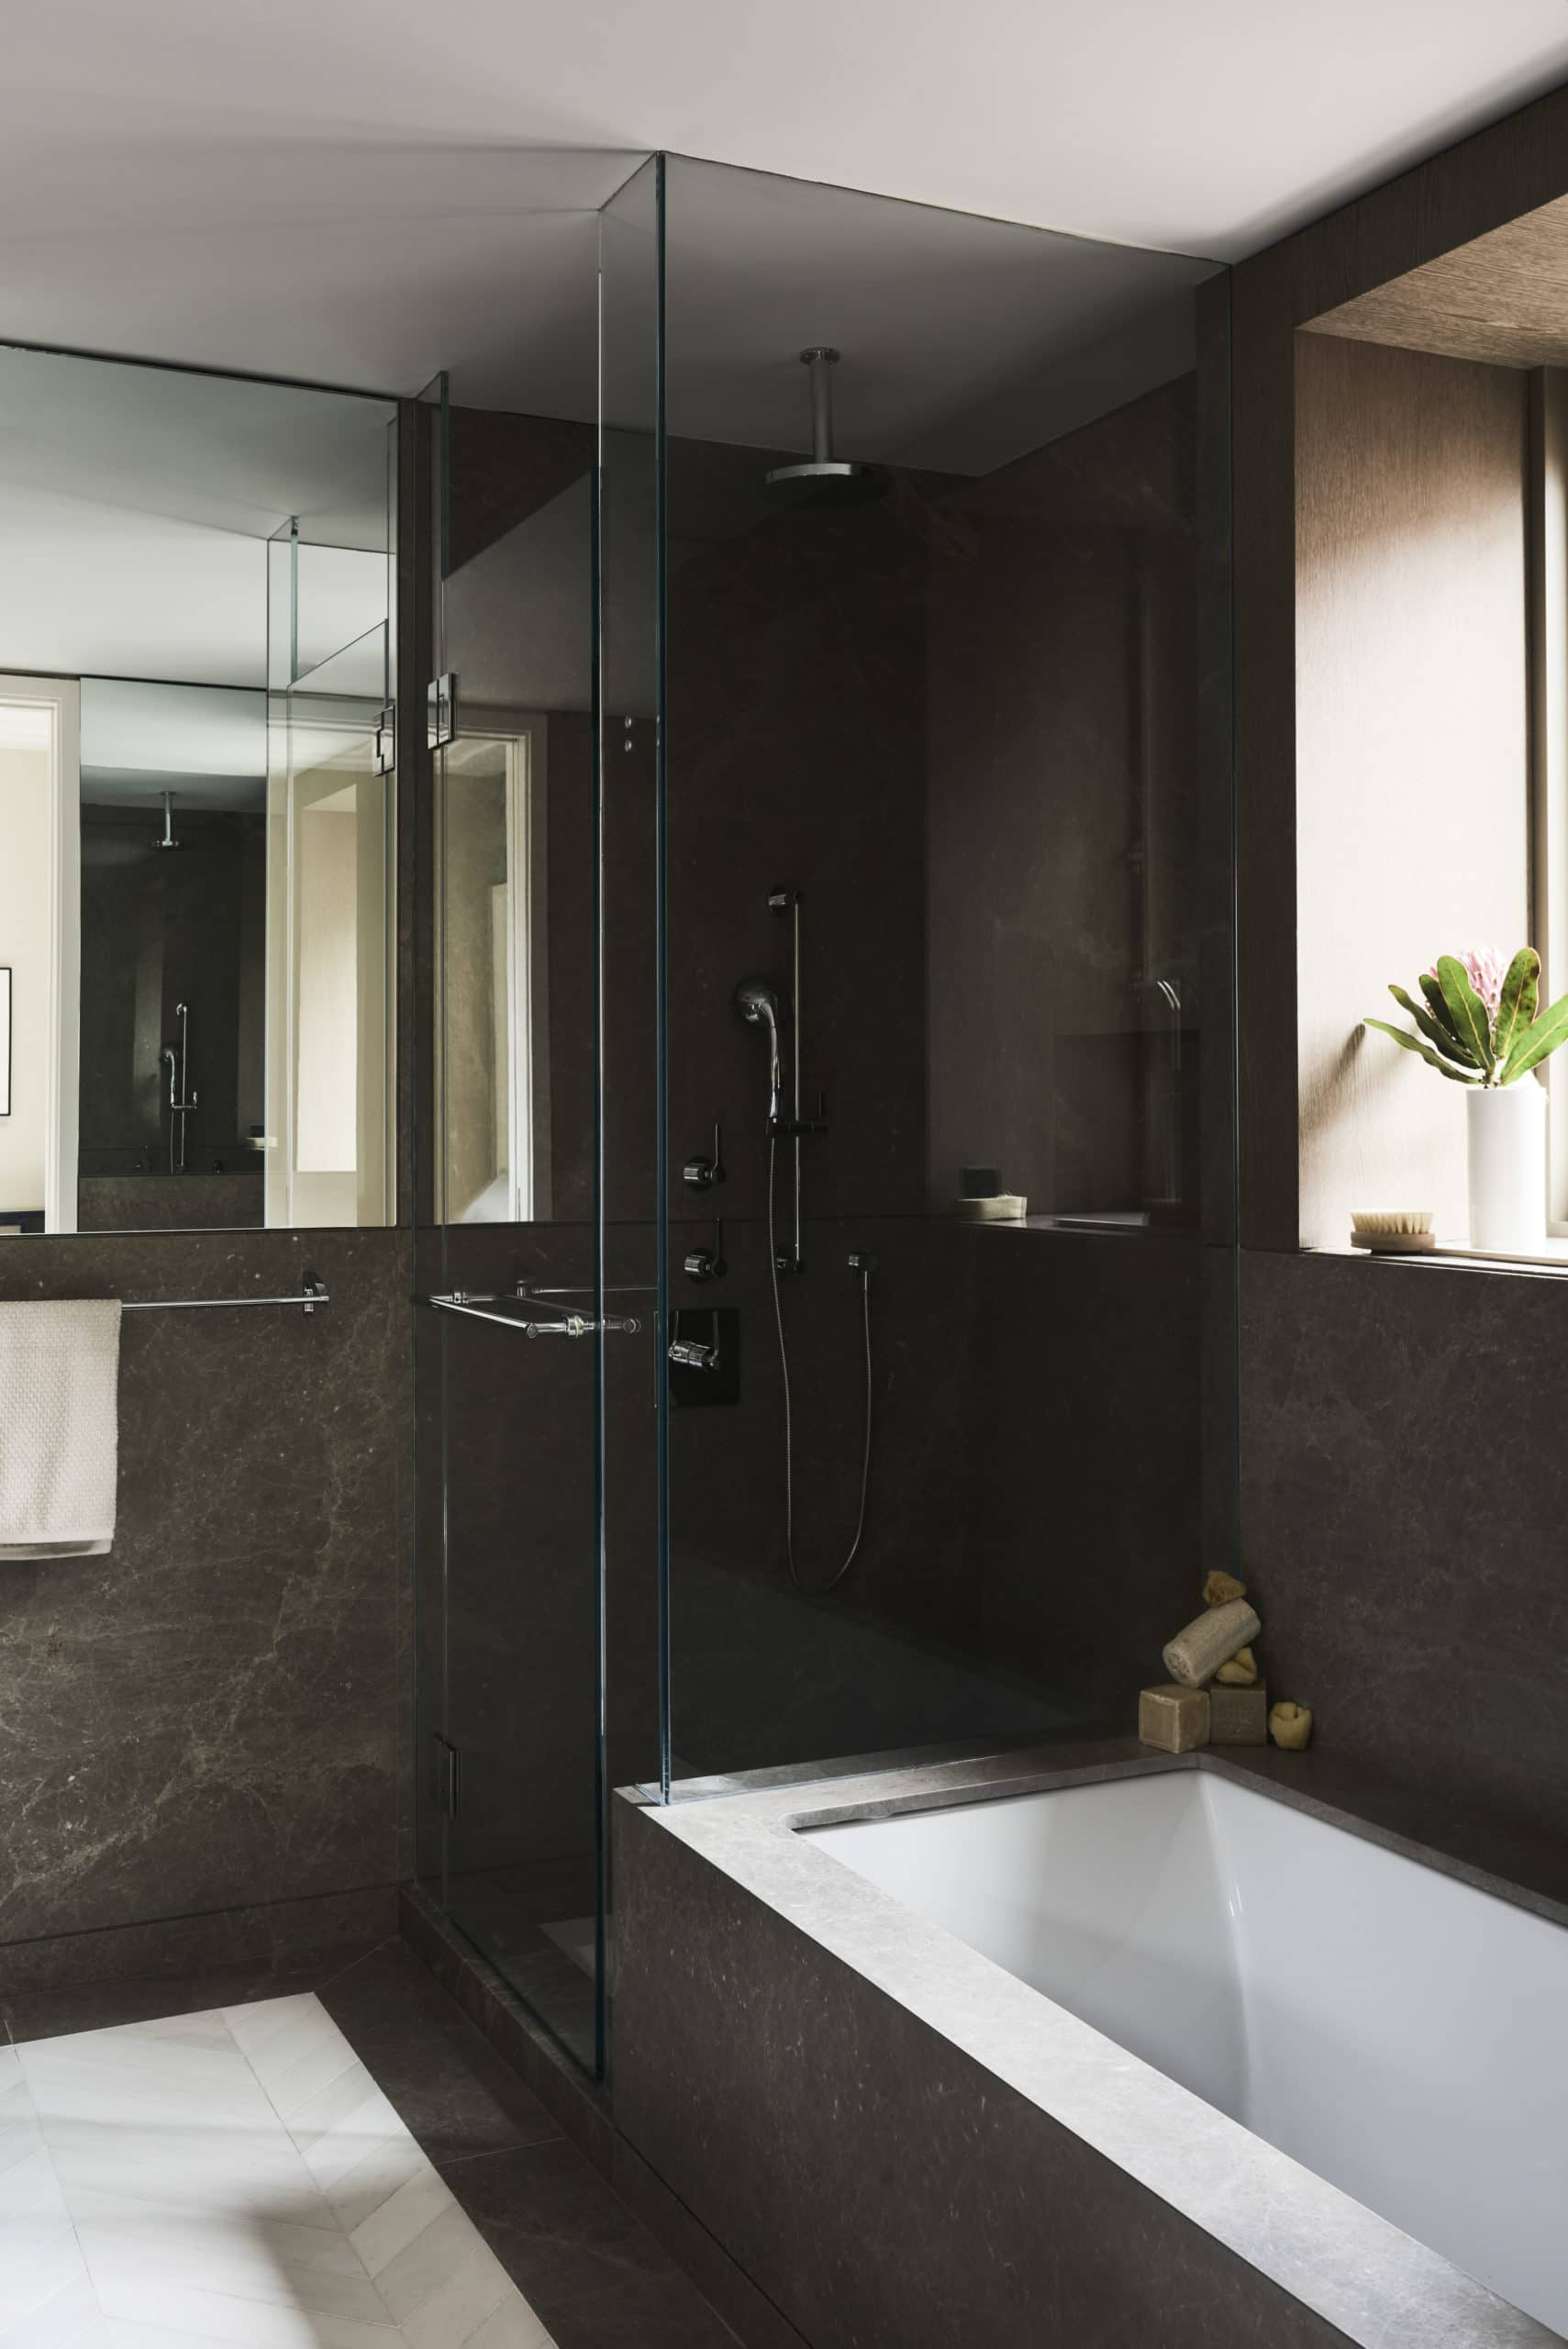 Bathroom at 40 Bleecker St residences in New York. Glass standing shower, soaking tub, and black stone walls with veining.